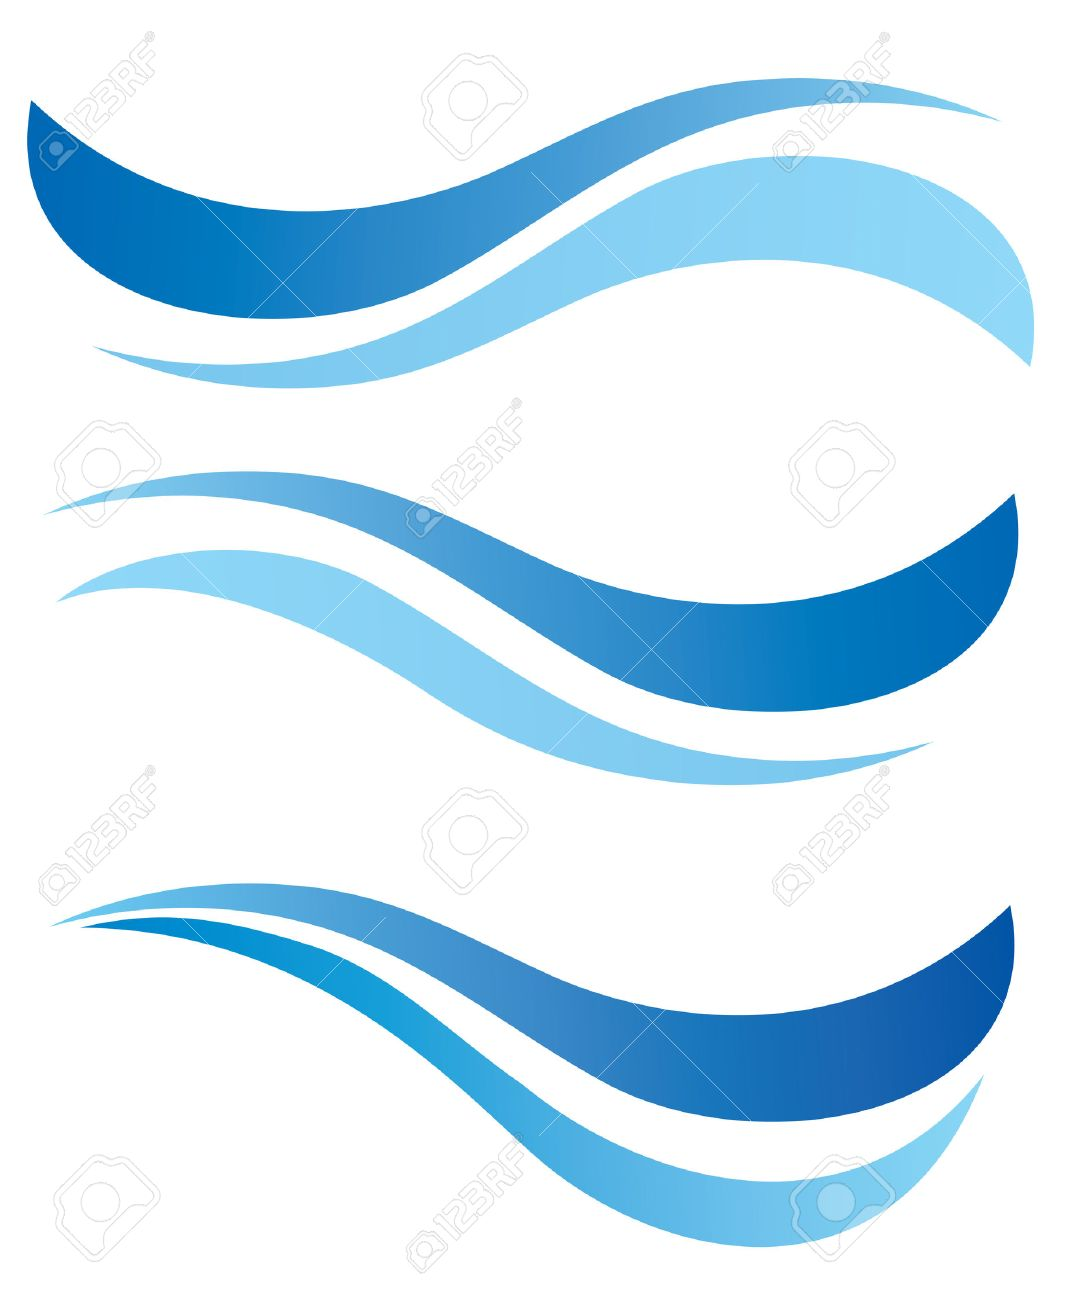 water waves design elements vector set royalty free cliparts rh 123rf com wave vector k wavevector spectrum